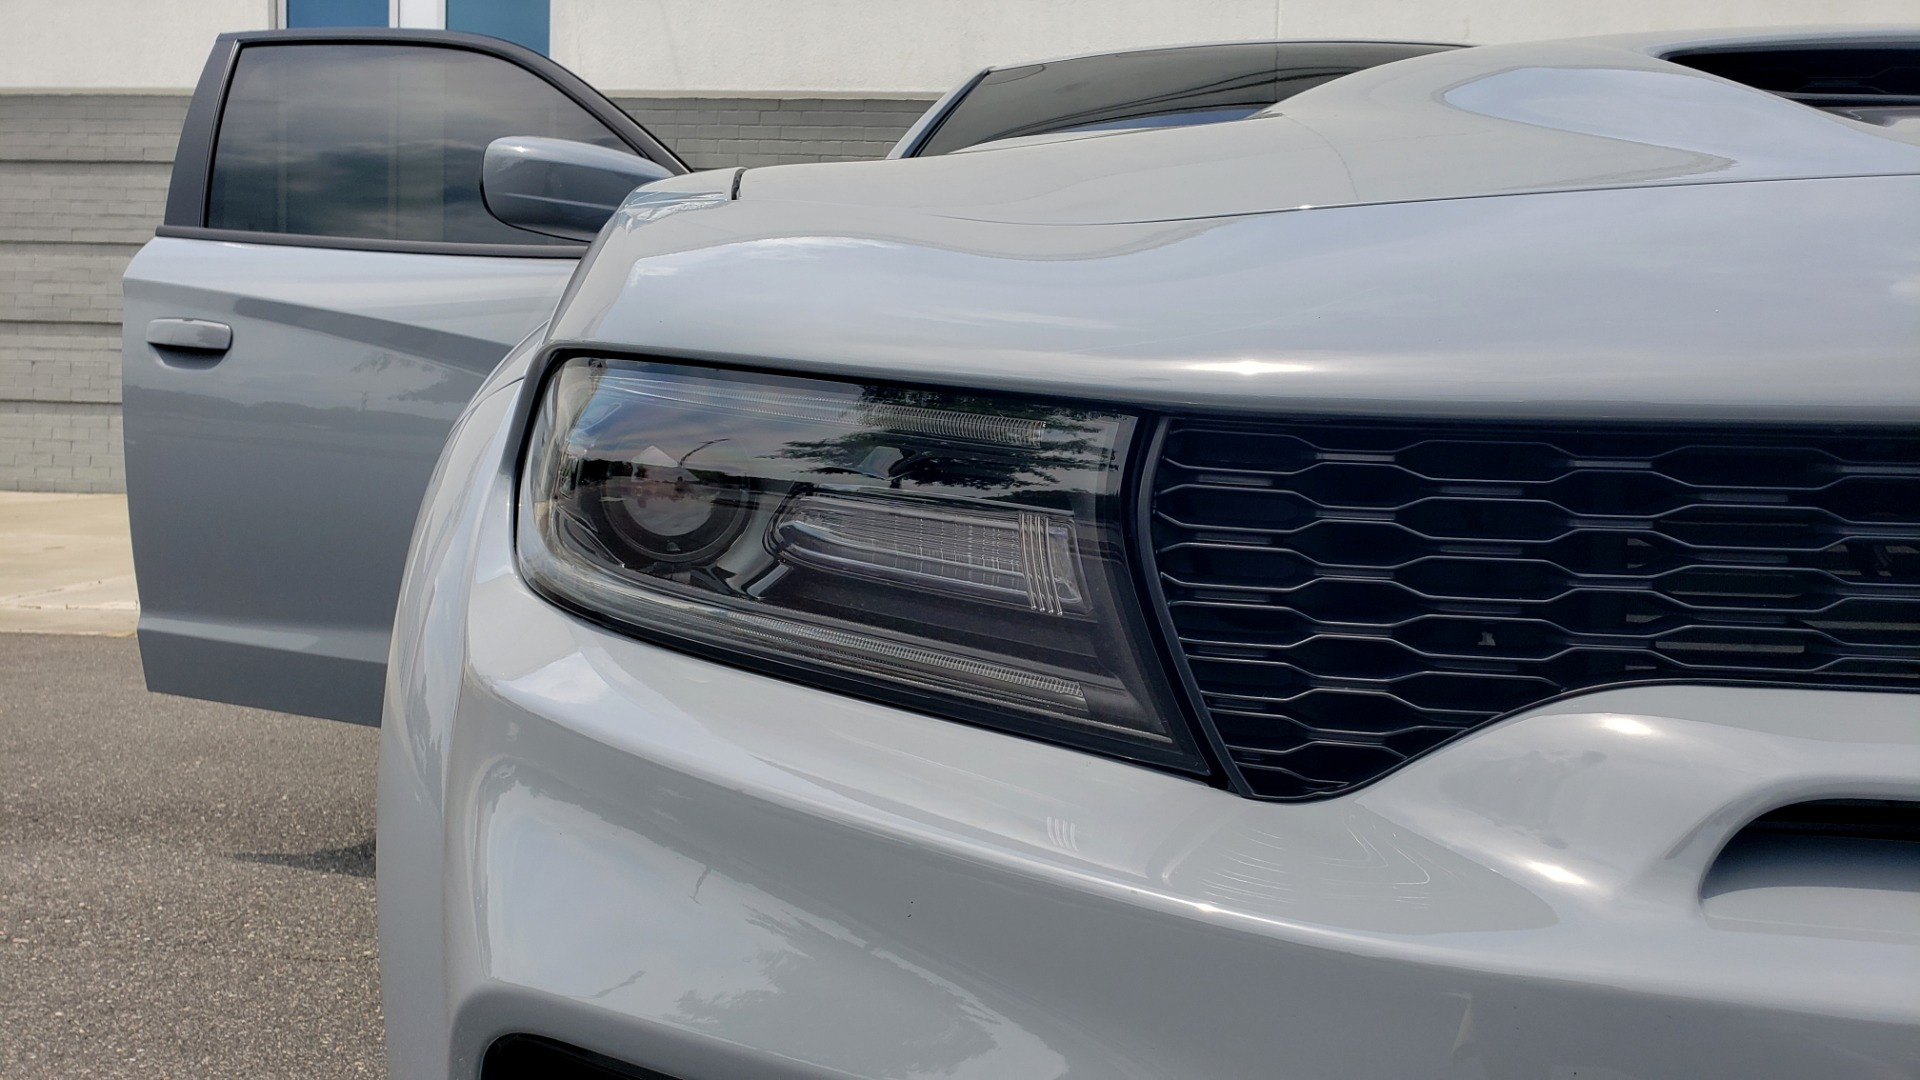 Used 2021 Dodge CHARGER SRT HELLCAT REDEYE WIDEBODY / CUSTOM TUNED 1100BHP for sale Sold at Formula Imports in Charlotte NC 28227 25